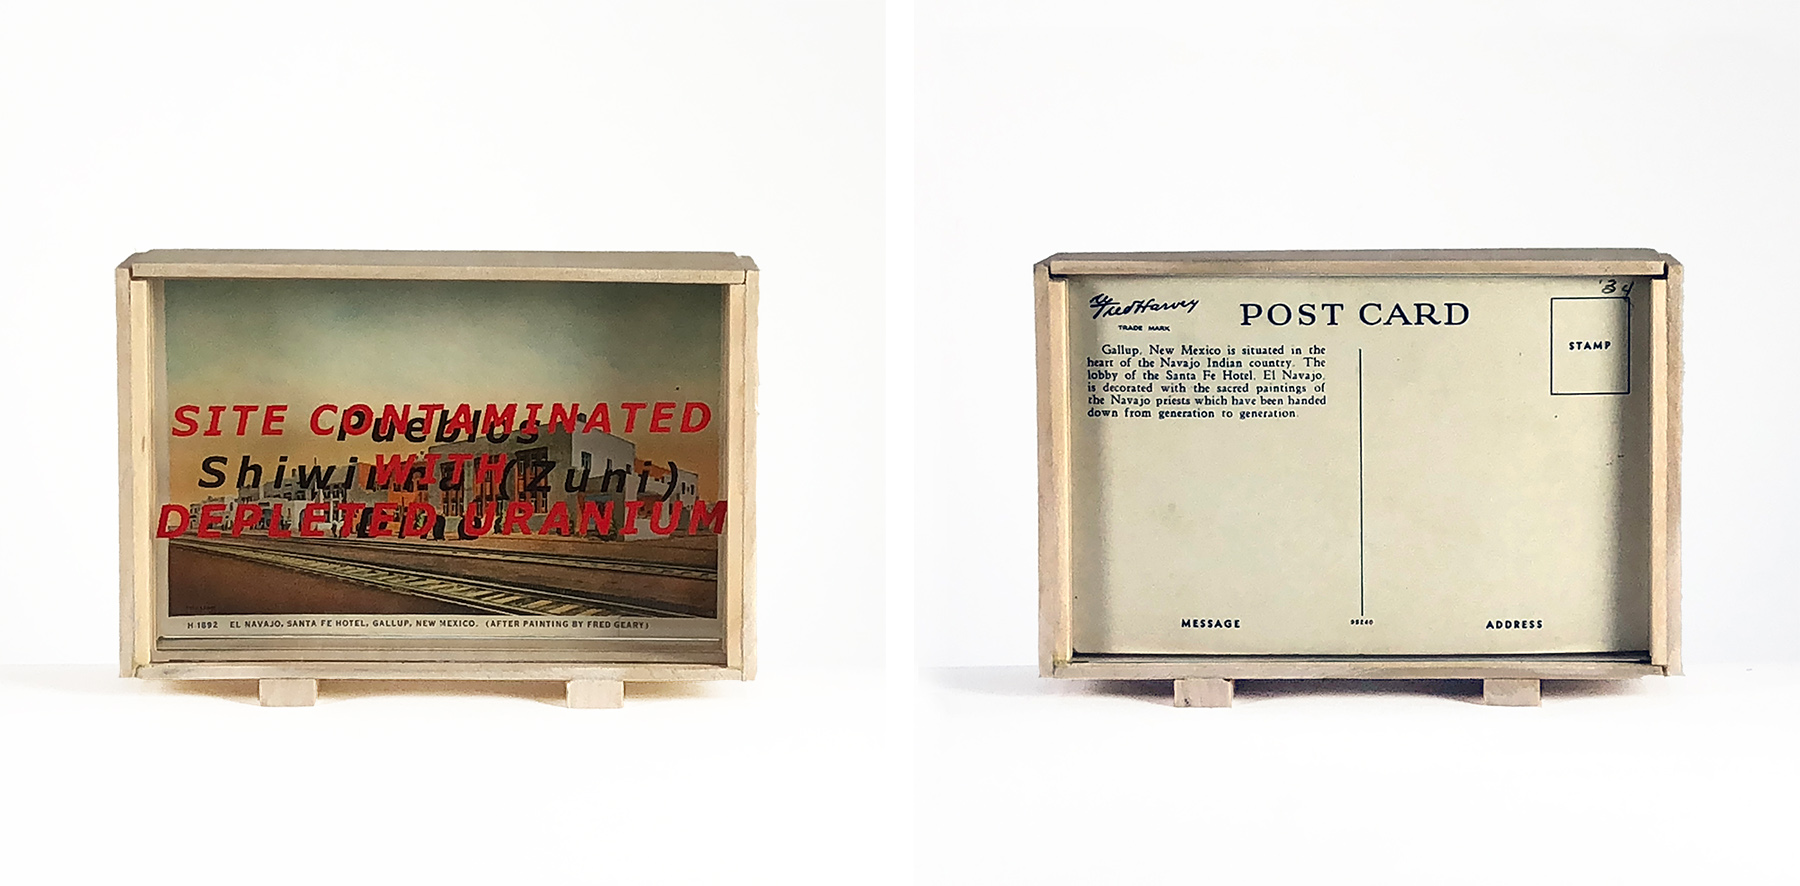 Front and back views of a box containing a vintage postcard depicting a hotel. The image is overlaid with black and red text.